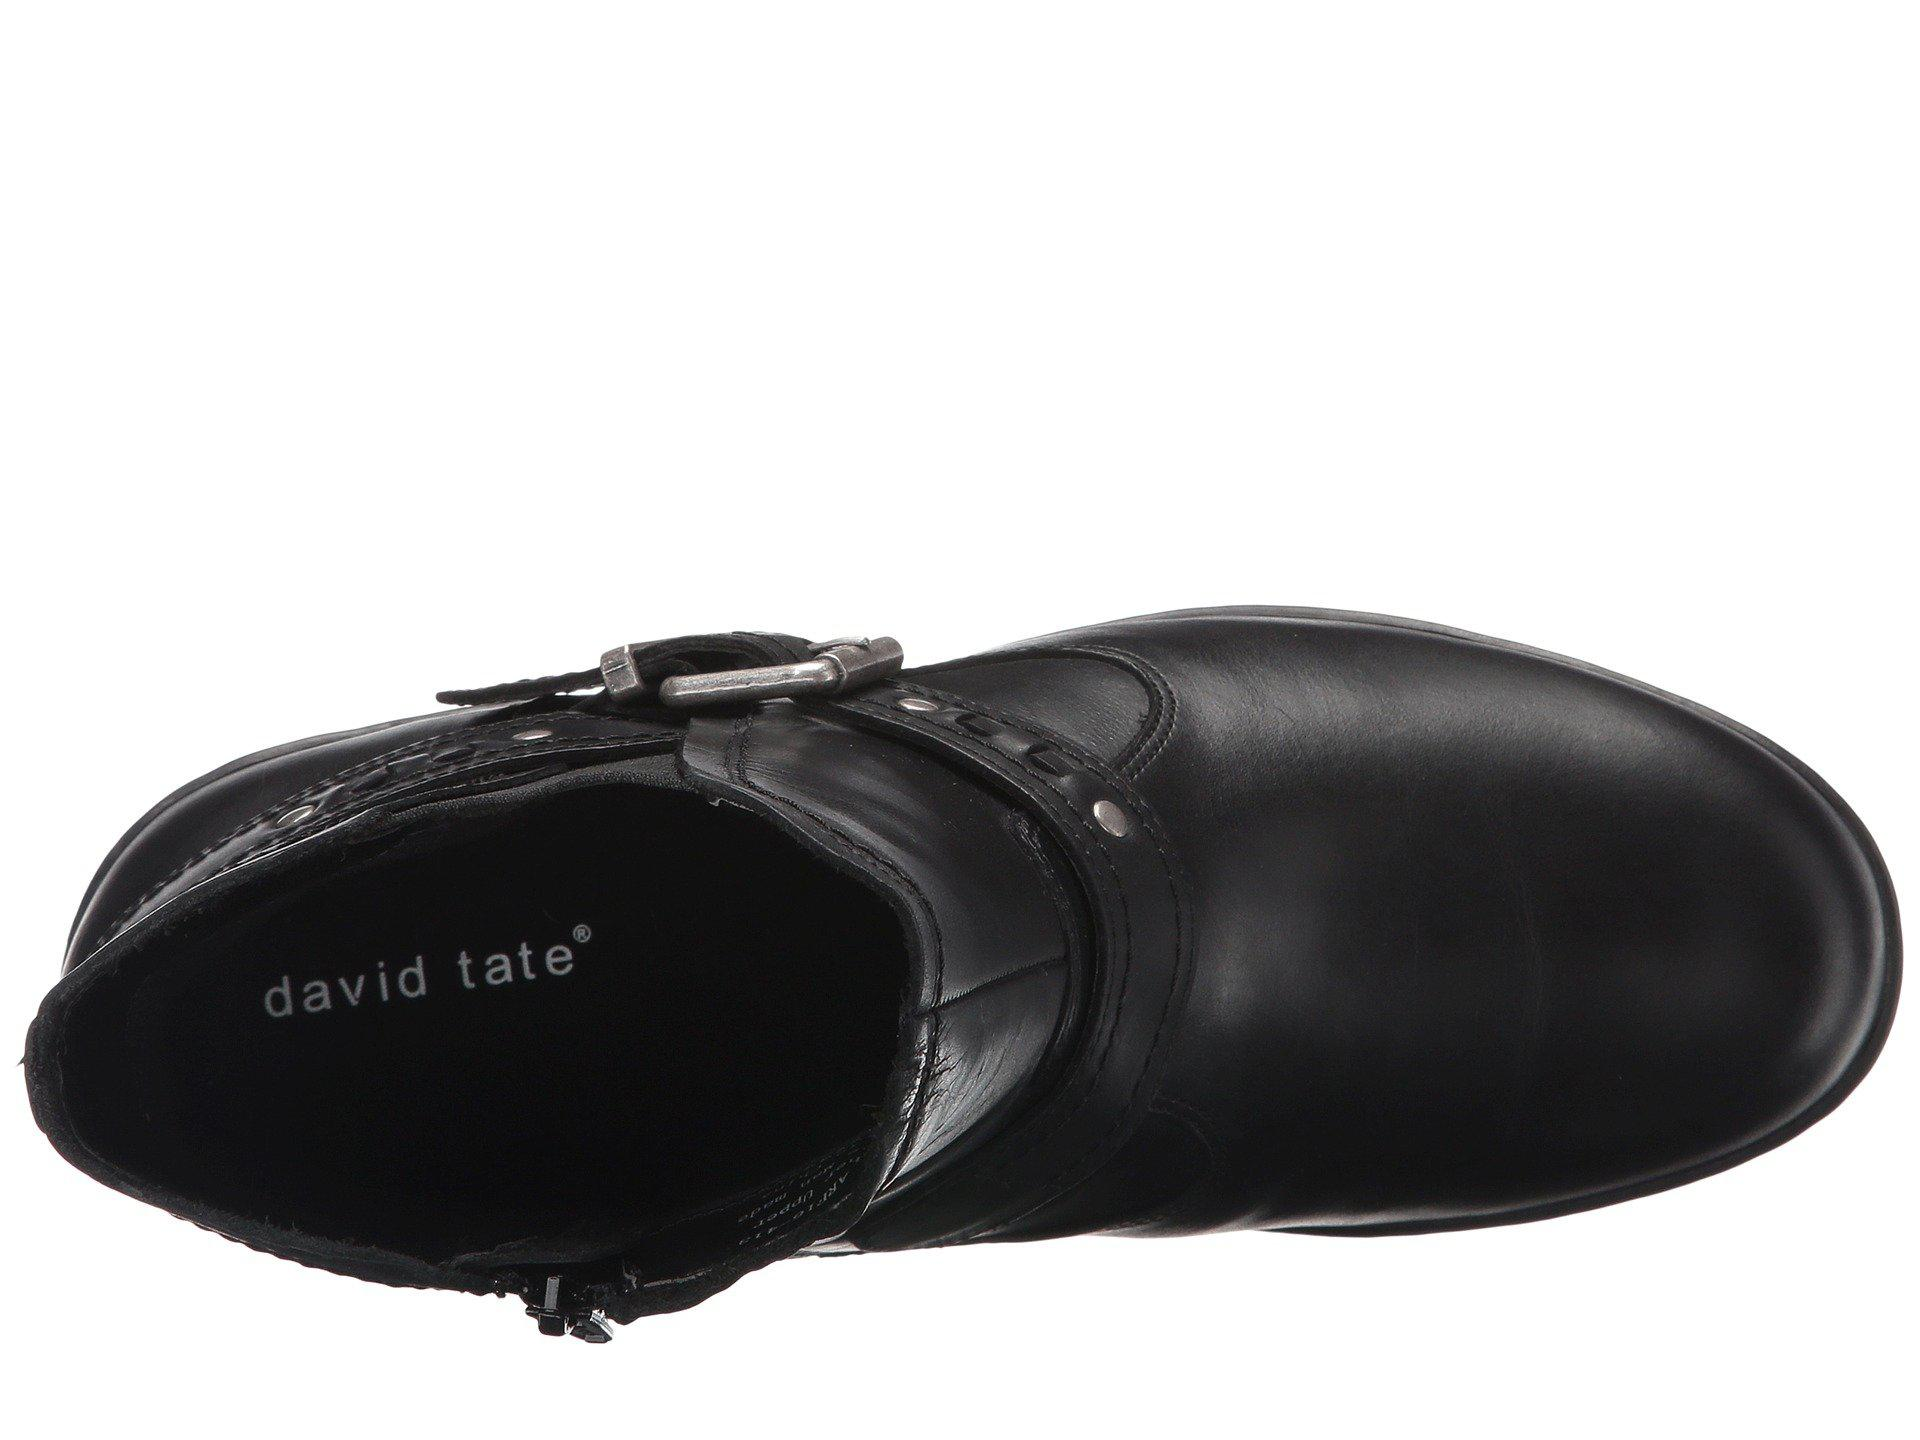 Art Tate Shoes lyst - david tate art in black